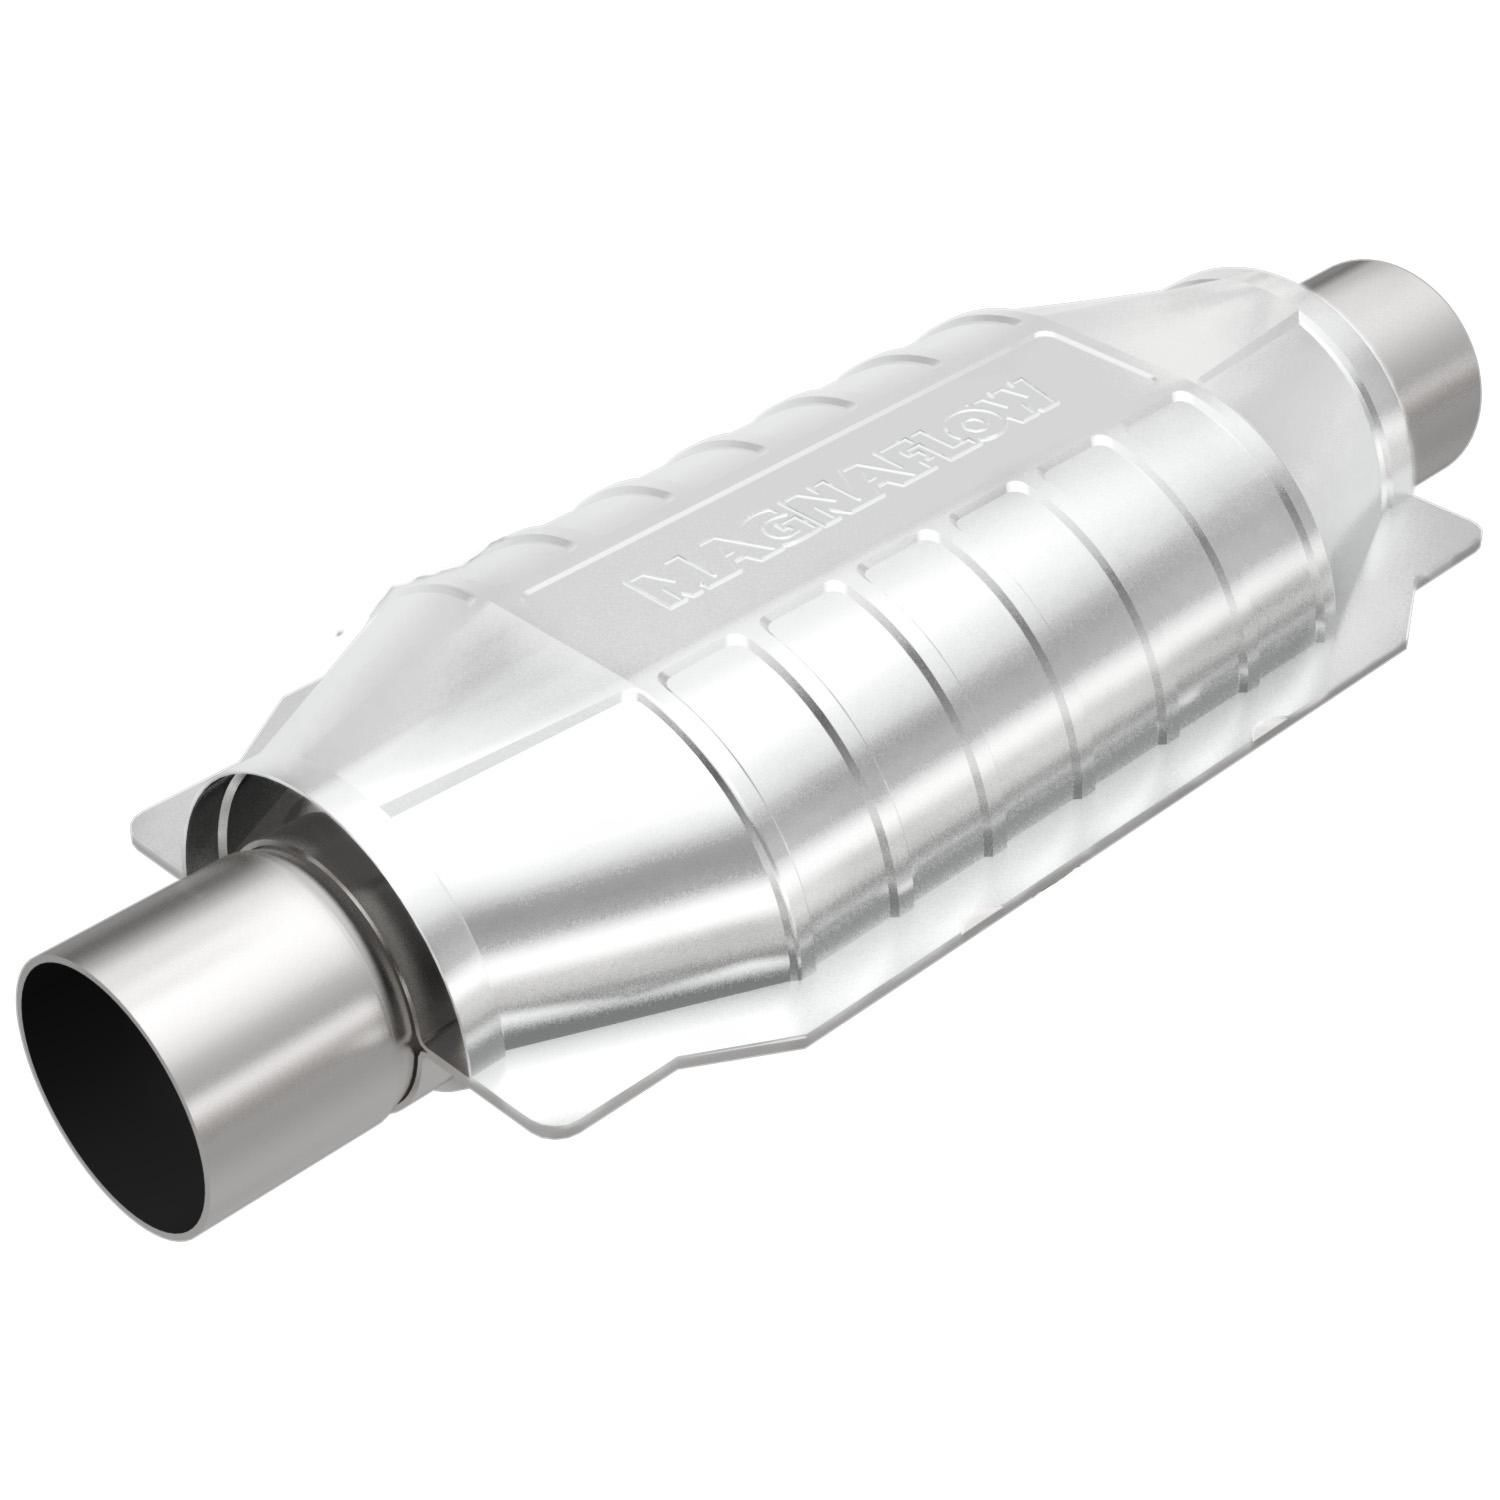 magnaflow universal carb catalytic converter 80708mgf